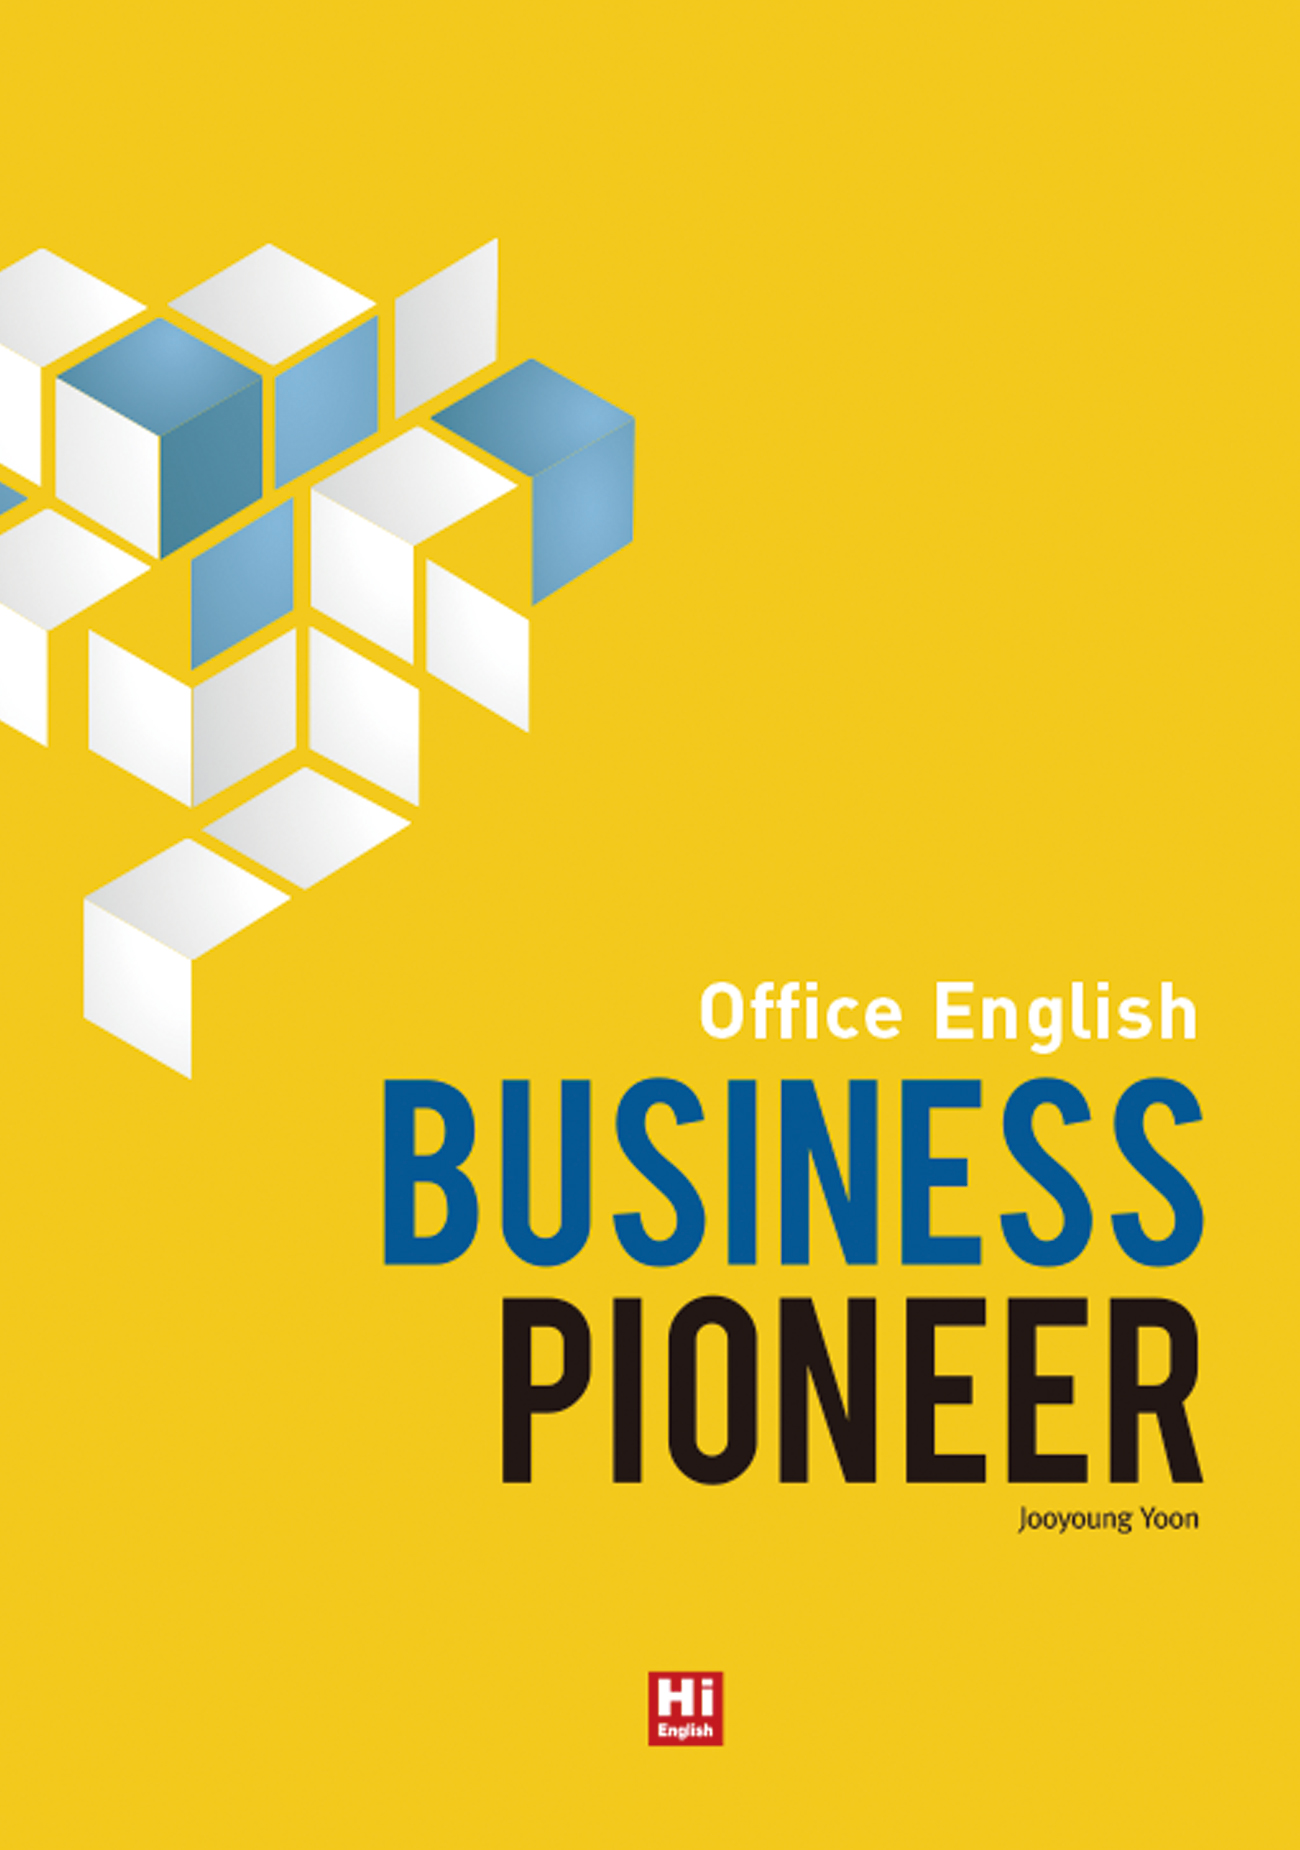 BUSINESS PIONEER Office English 교재 이미지